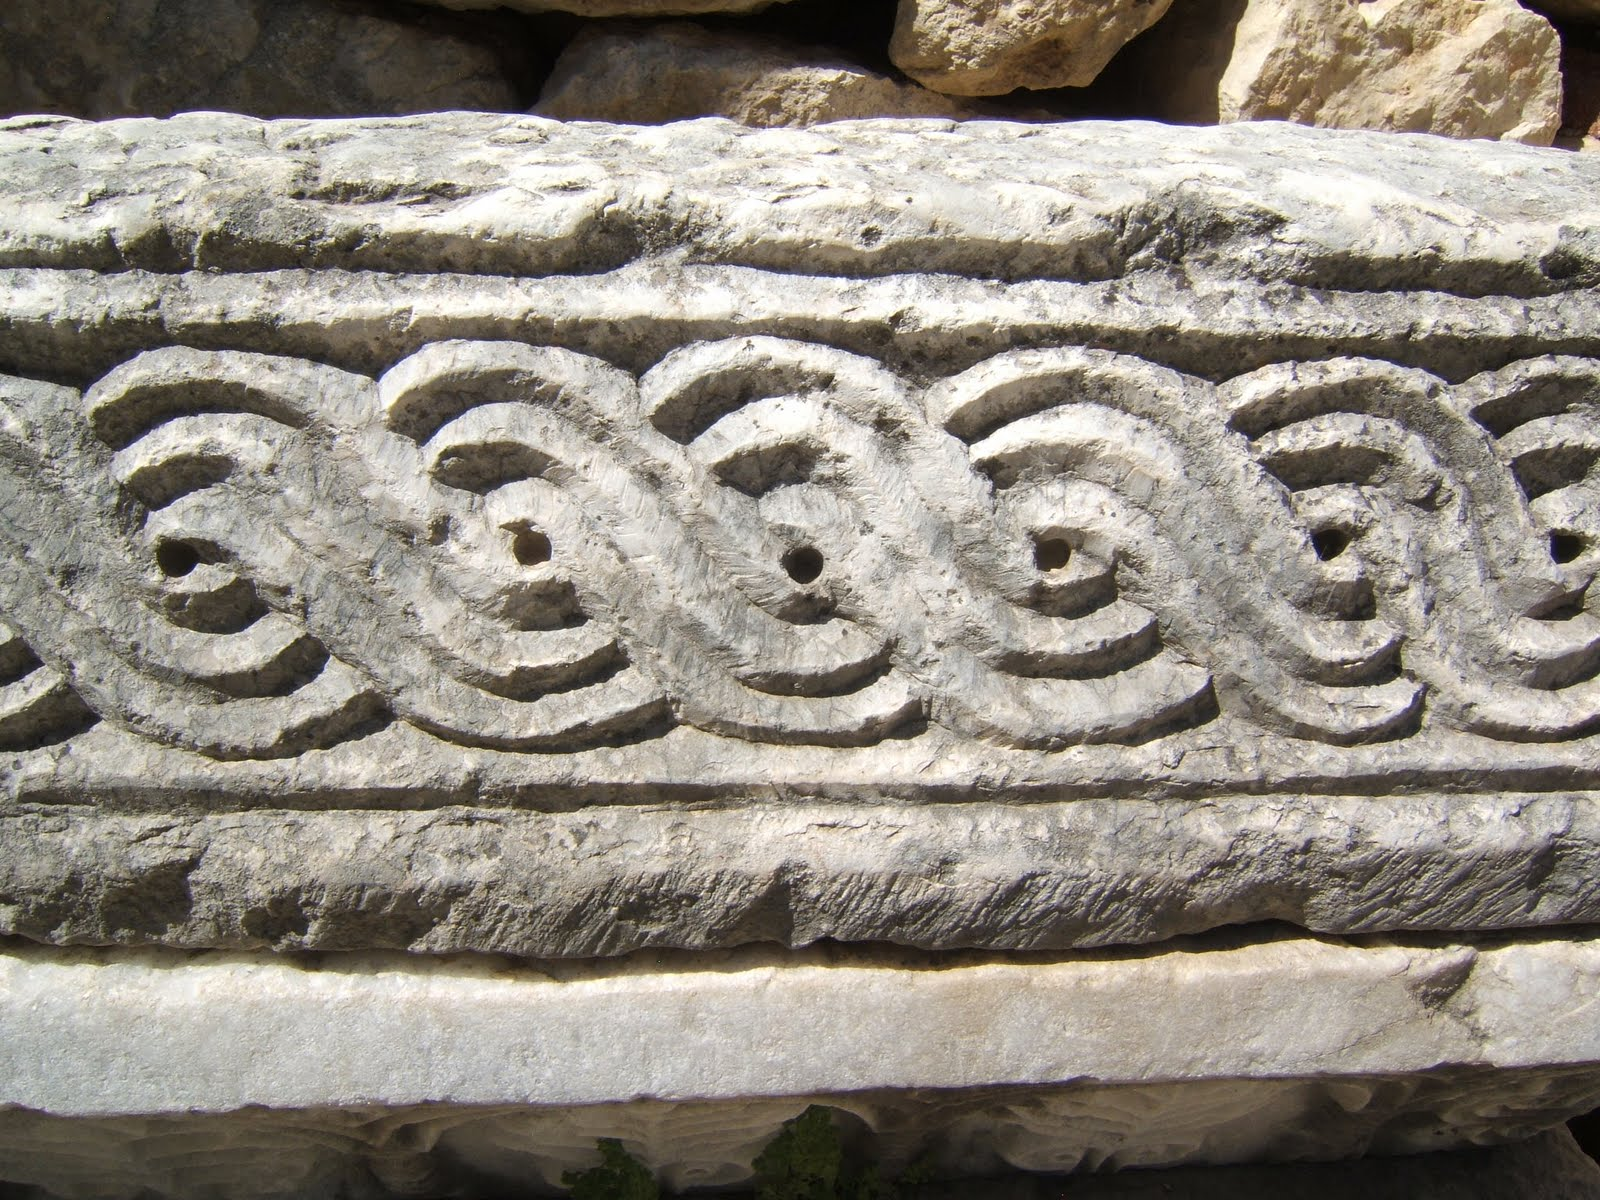 Carved stone knot work, from Church of St. Nicholas, Demre, Turkey